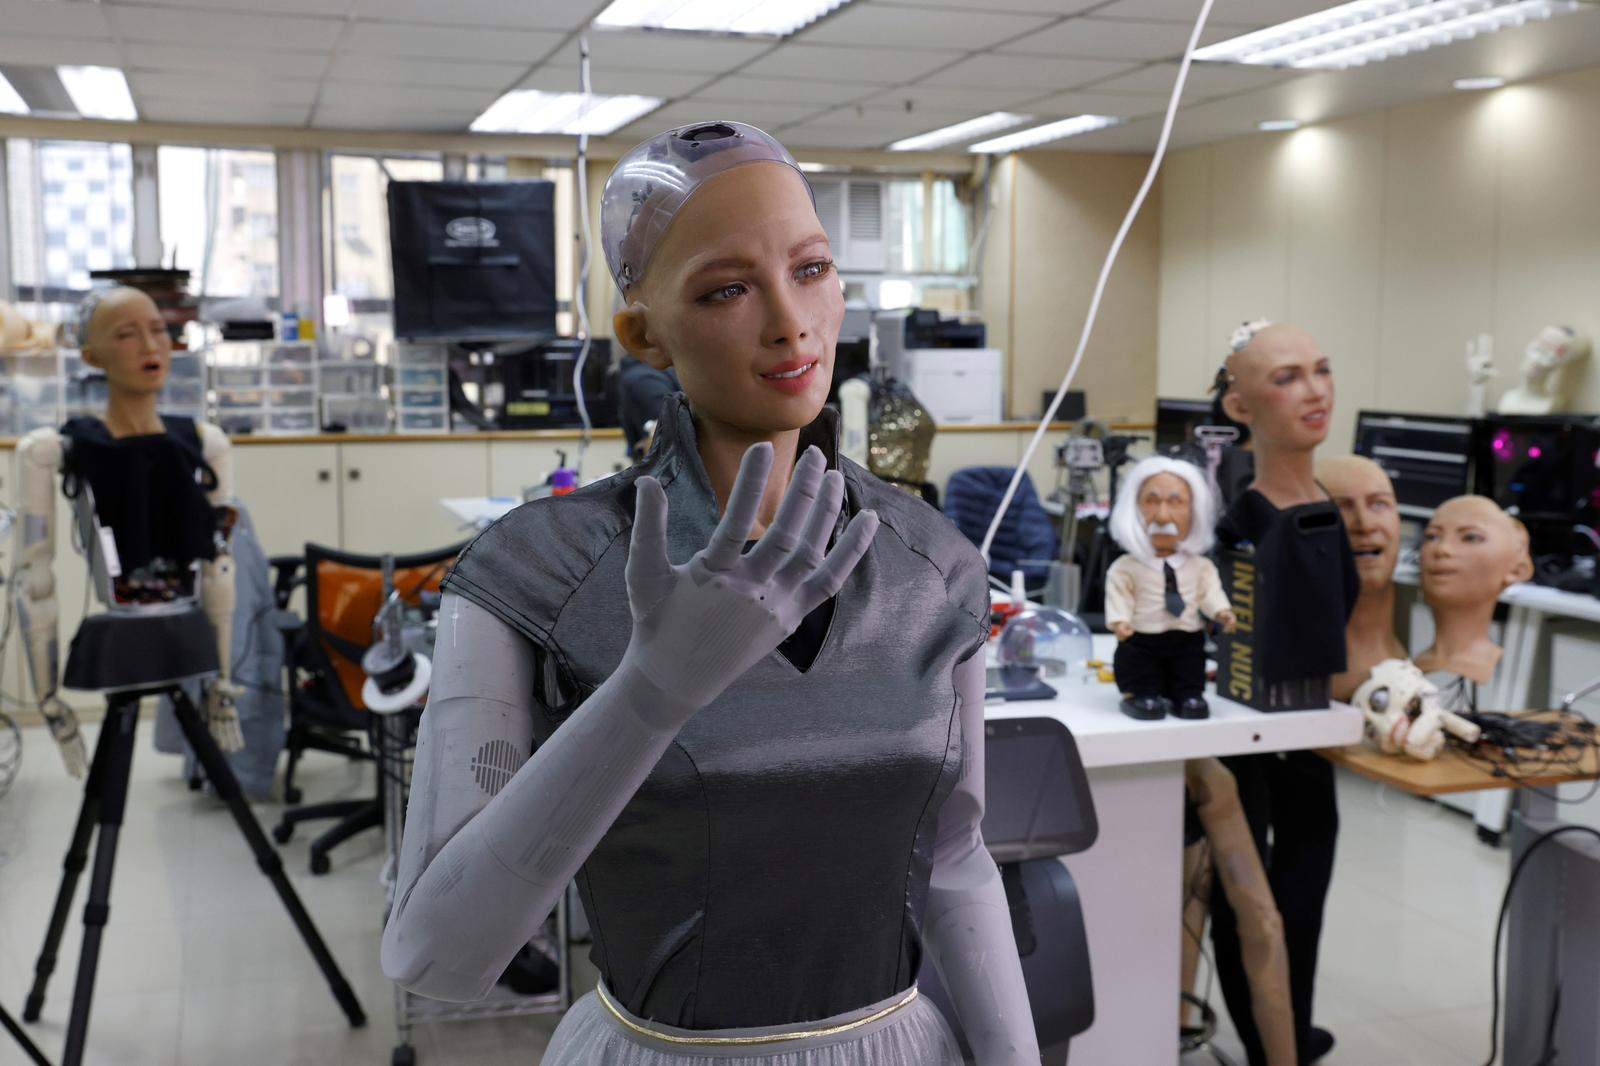 Humanoid robot Sophia developed by Hanson Robotics introduces herself at the company's lab in Hong Kong, China January 12, 2021. Photo: Reuters